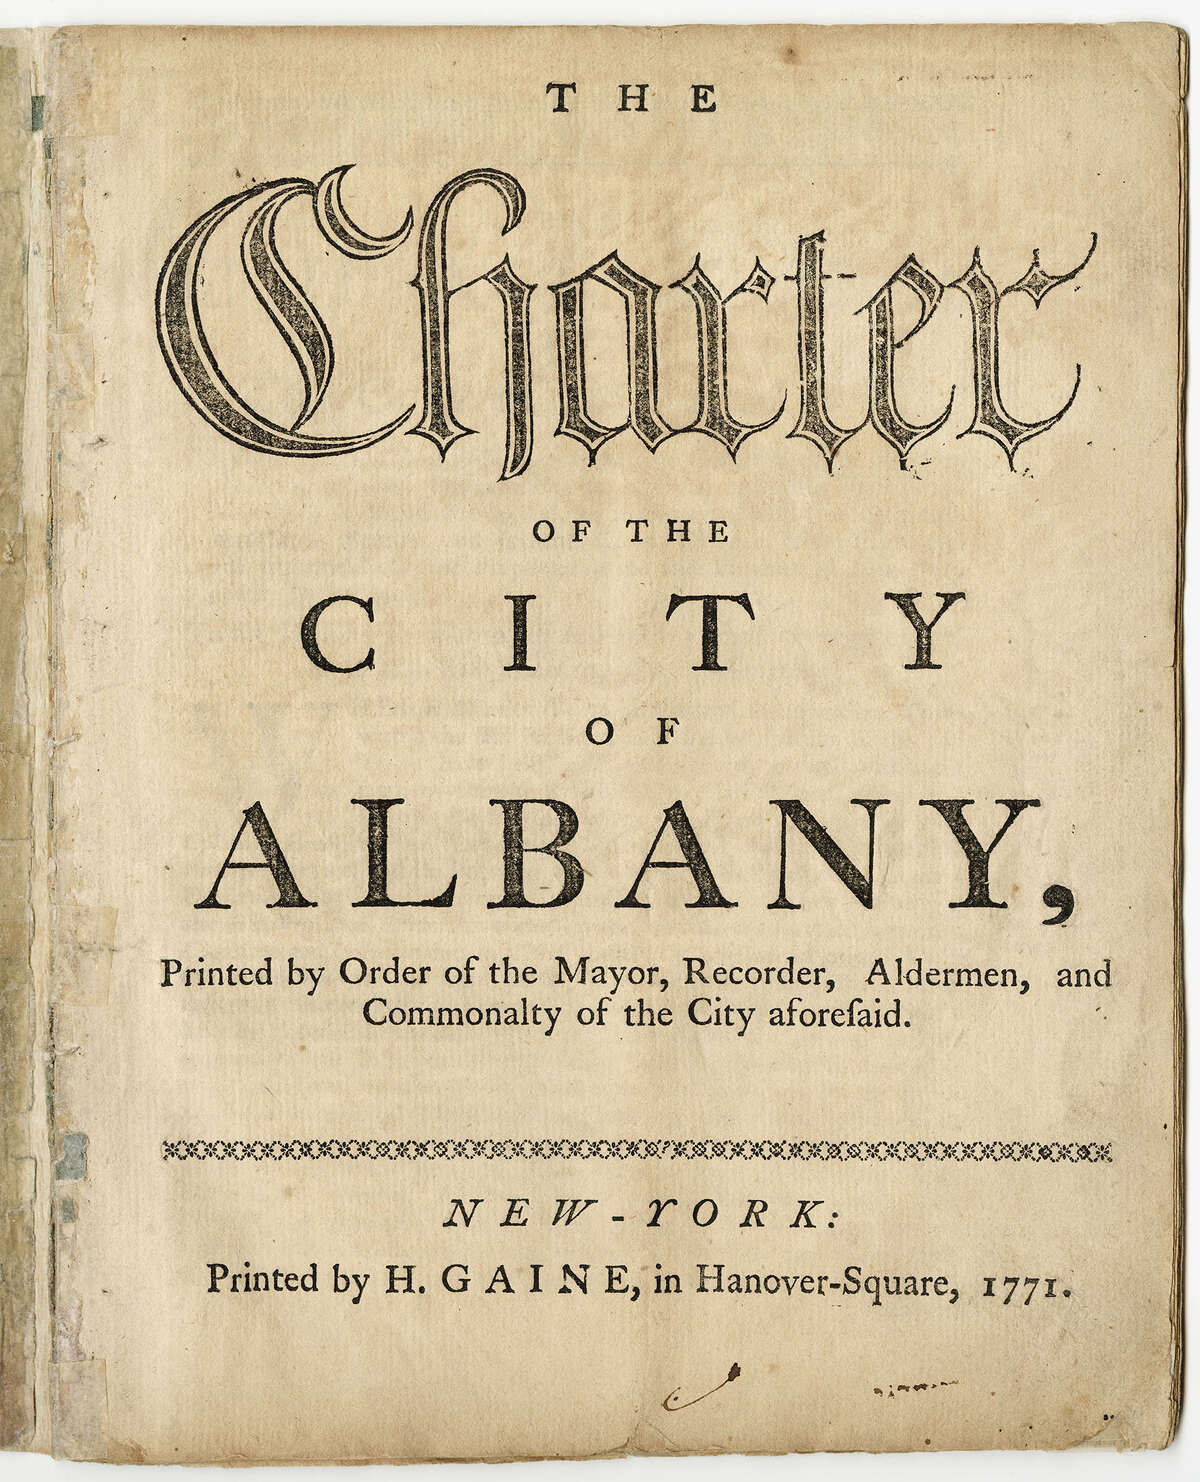 The Charter of the City of Albany Frontispiece Printed by H.Gaine, in Hanover-Square 1771 Albany Institute of History & Art Library, CF530B1F23num97 DI 948